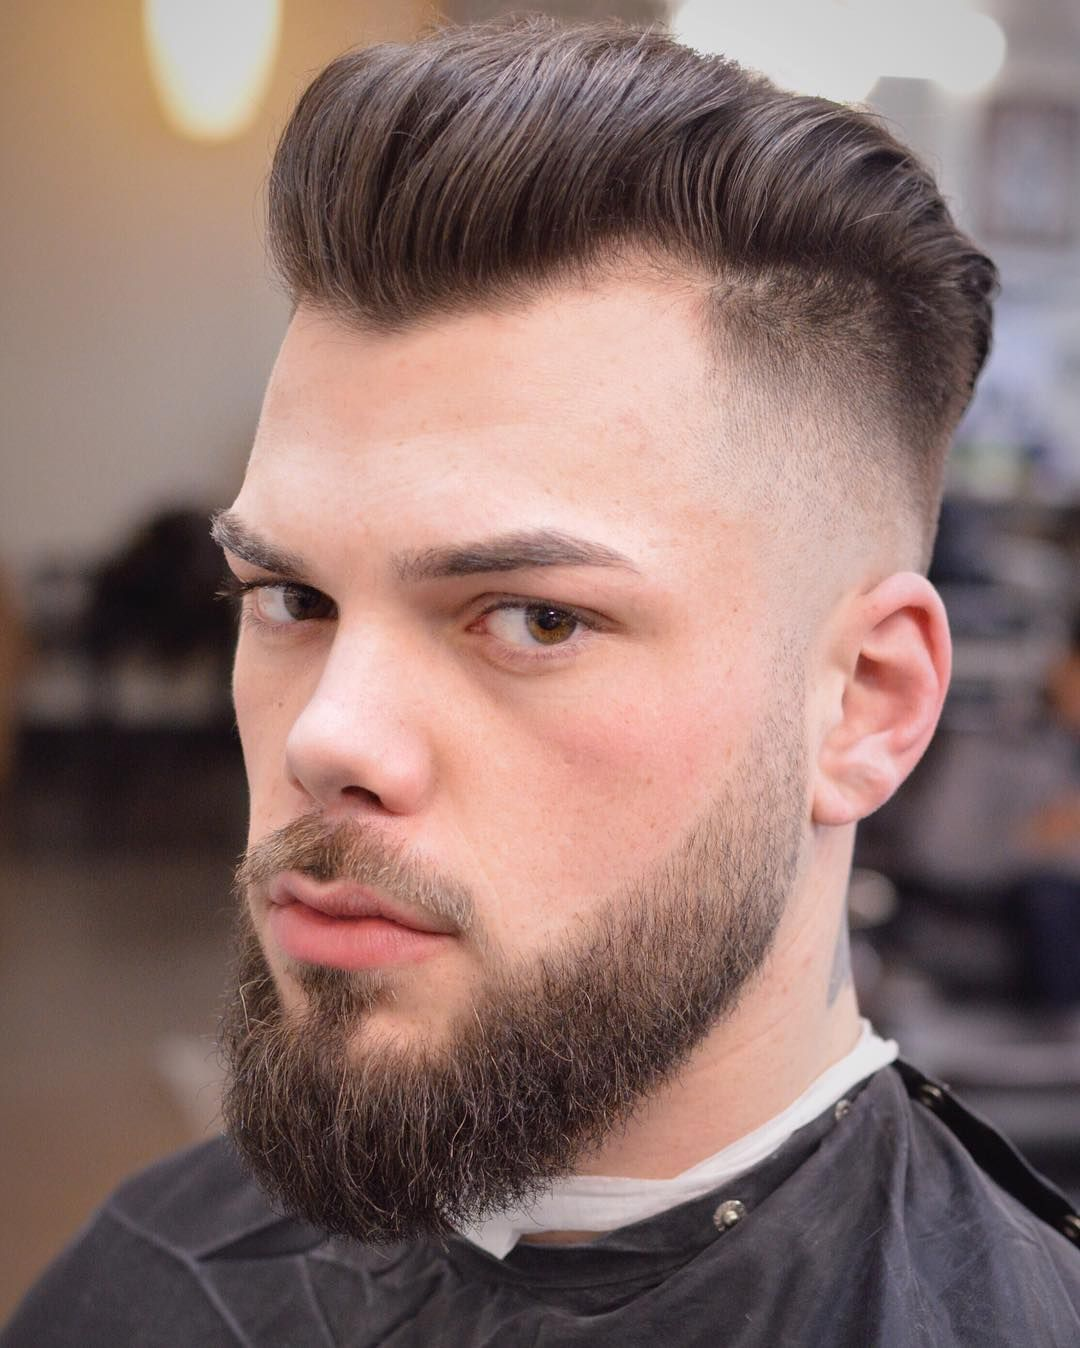 Men's blowout haircut awesome  stunning blowout haircut ideas for men  trendy